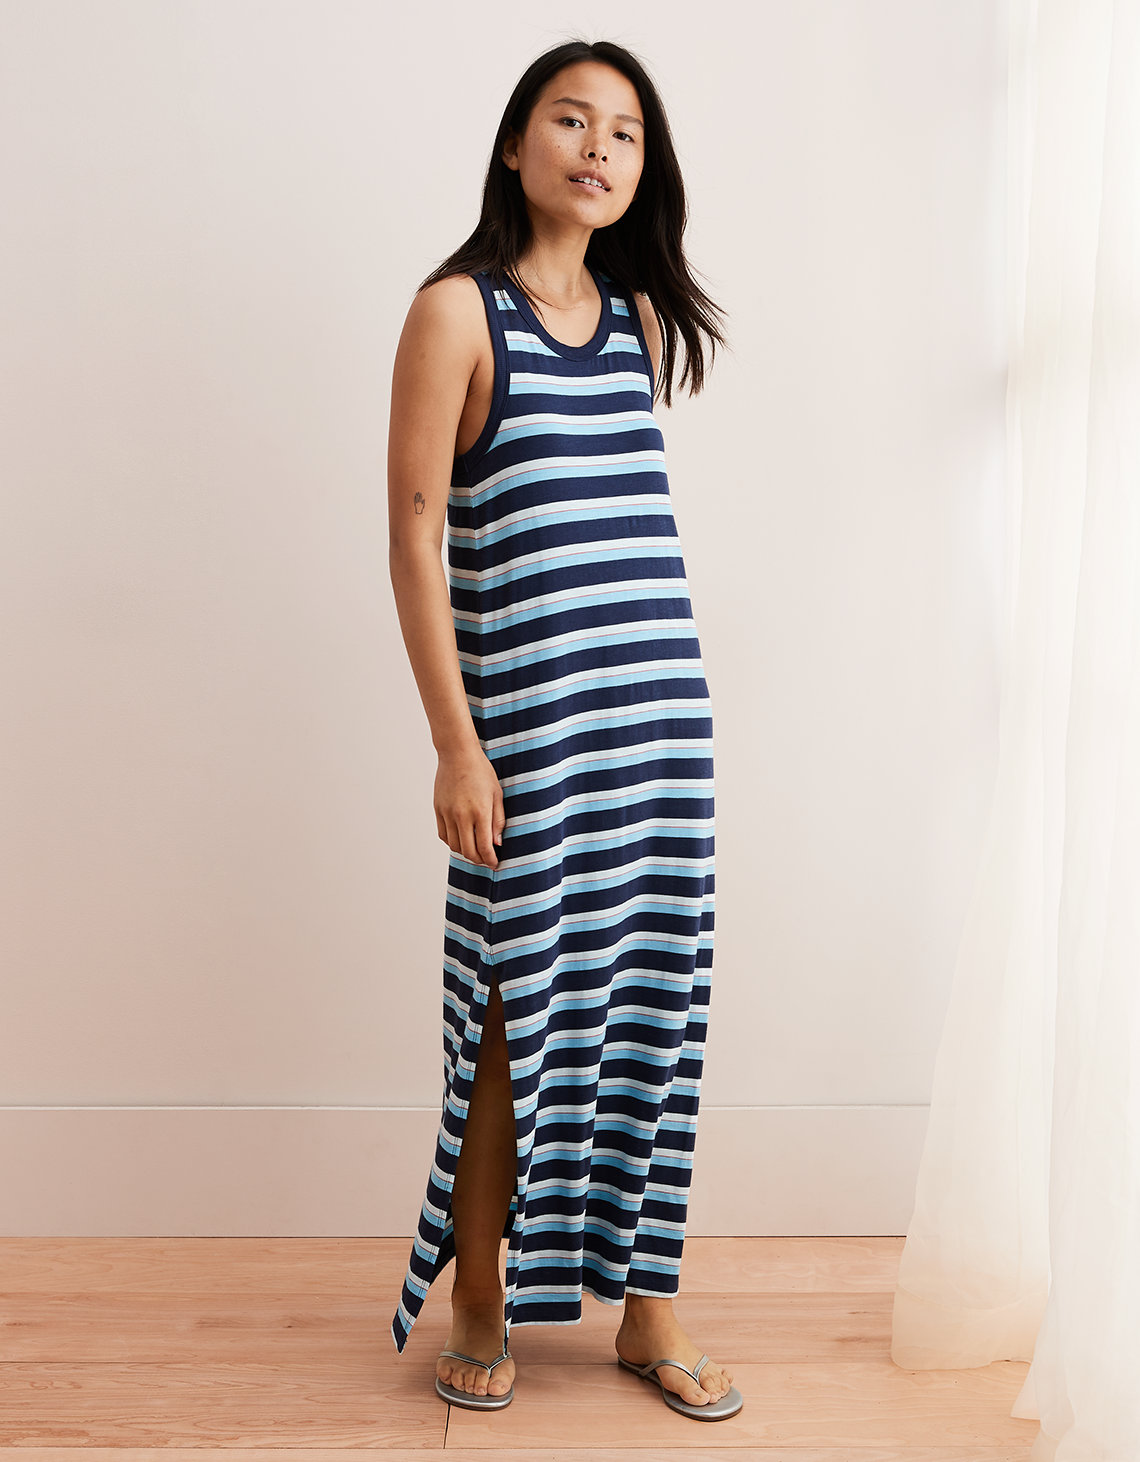 c1e4f574422 Aerie Knit Maxi Dress, Navy | American Eagle Outfitters